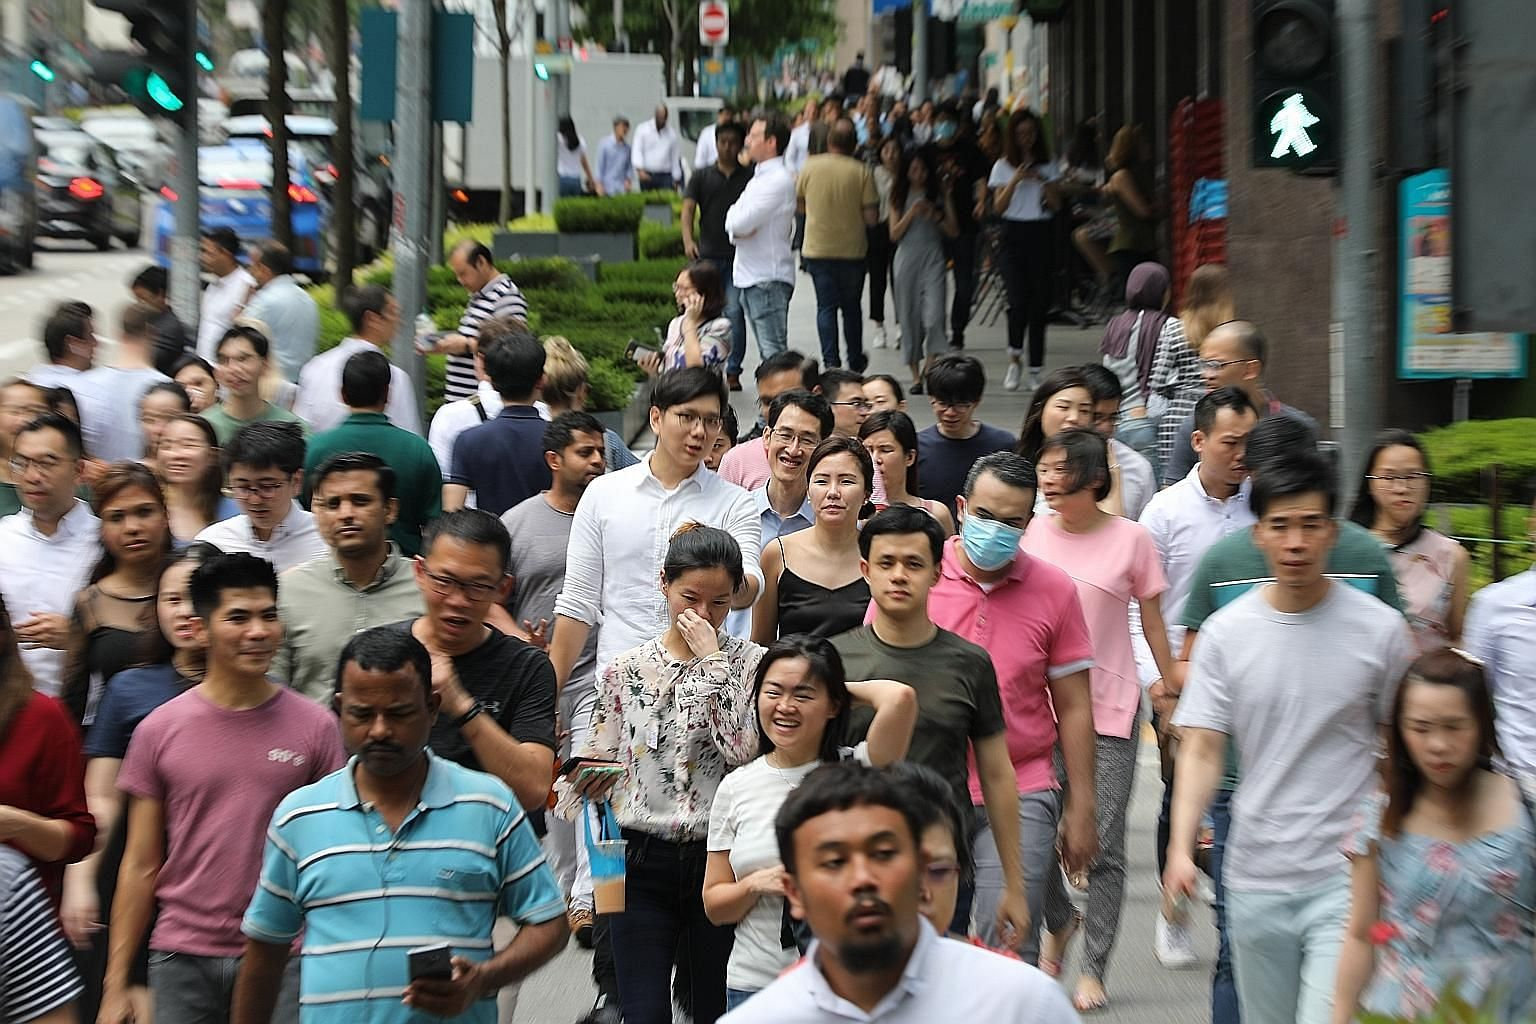 The basic cash grant of 25 per cent of wages under the Jobs Support Scheme applies to all Singaporean and permanent resident employees, who number more than 1.9 million. The support will apply to the first $4,600 of gross monthly wages per local empl